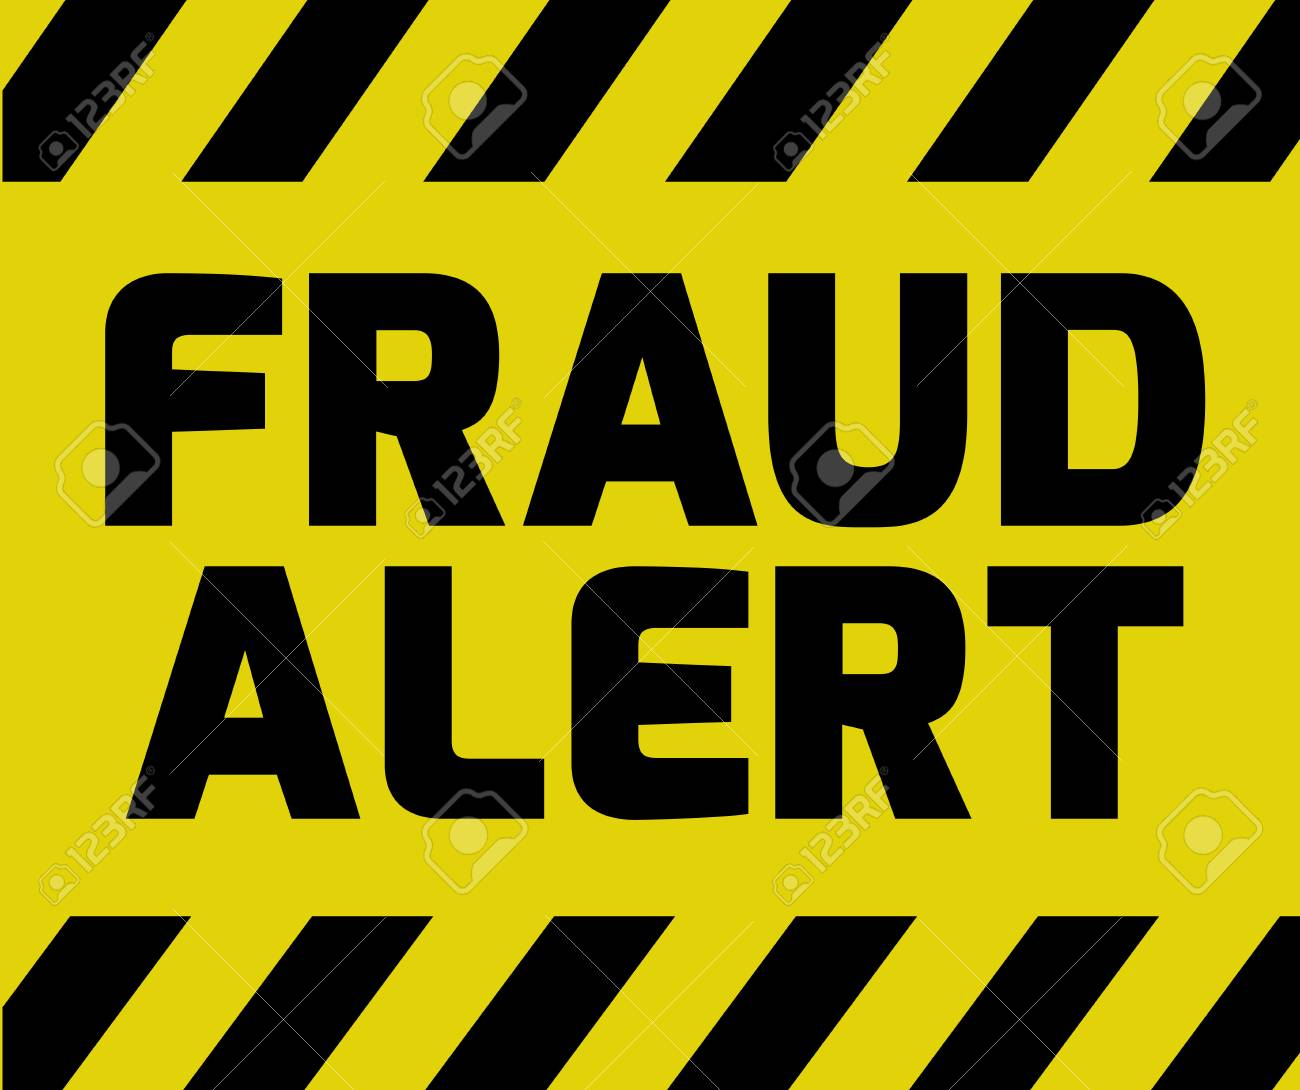 Fraud Alert sign yellow with stripes, road sign variation. Bright vivid sign with warning message. - 62996383